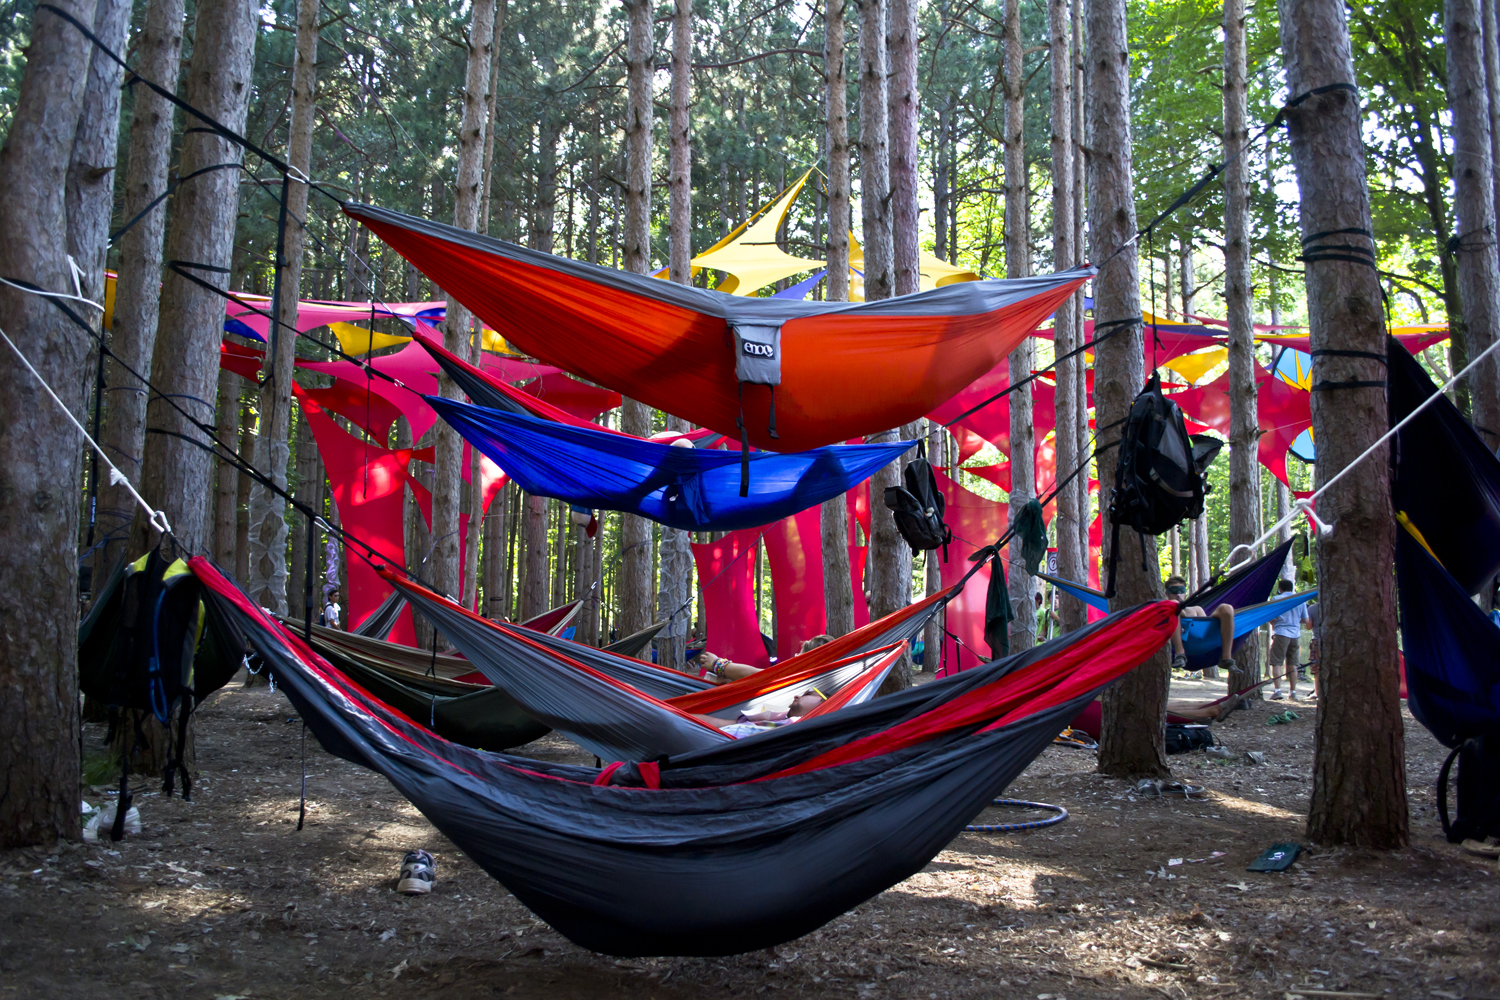 afternoon basic enos hammocks americas takeover students category in the of hammocking hammock plaza simply enjoying